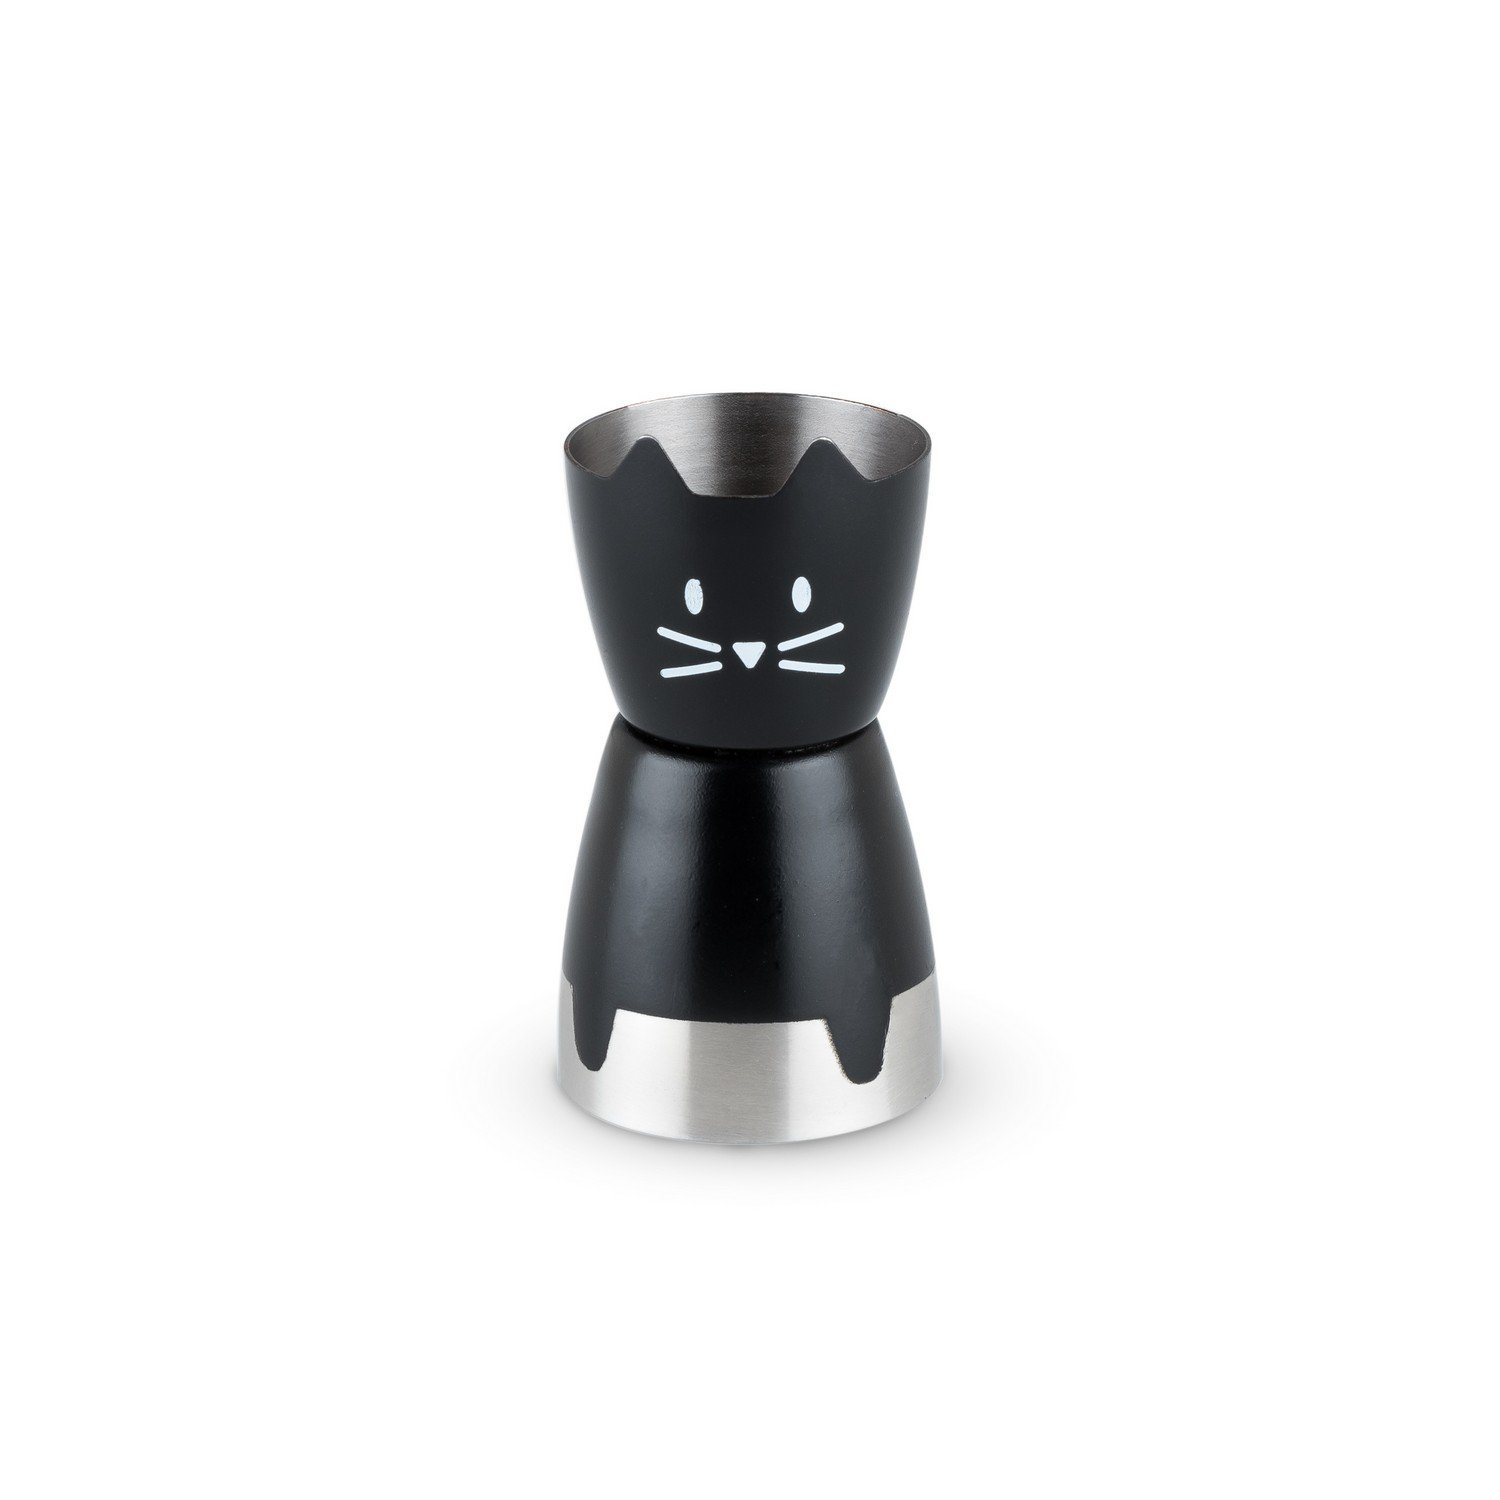 Double Jigger Stainless Steel, Cute Black Cat Cocktail Double Jigger (Sold by Case, Pack of 10) by True Fabrications